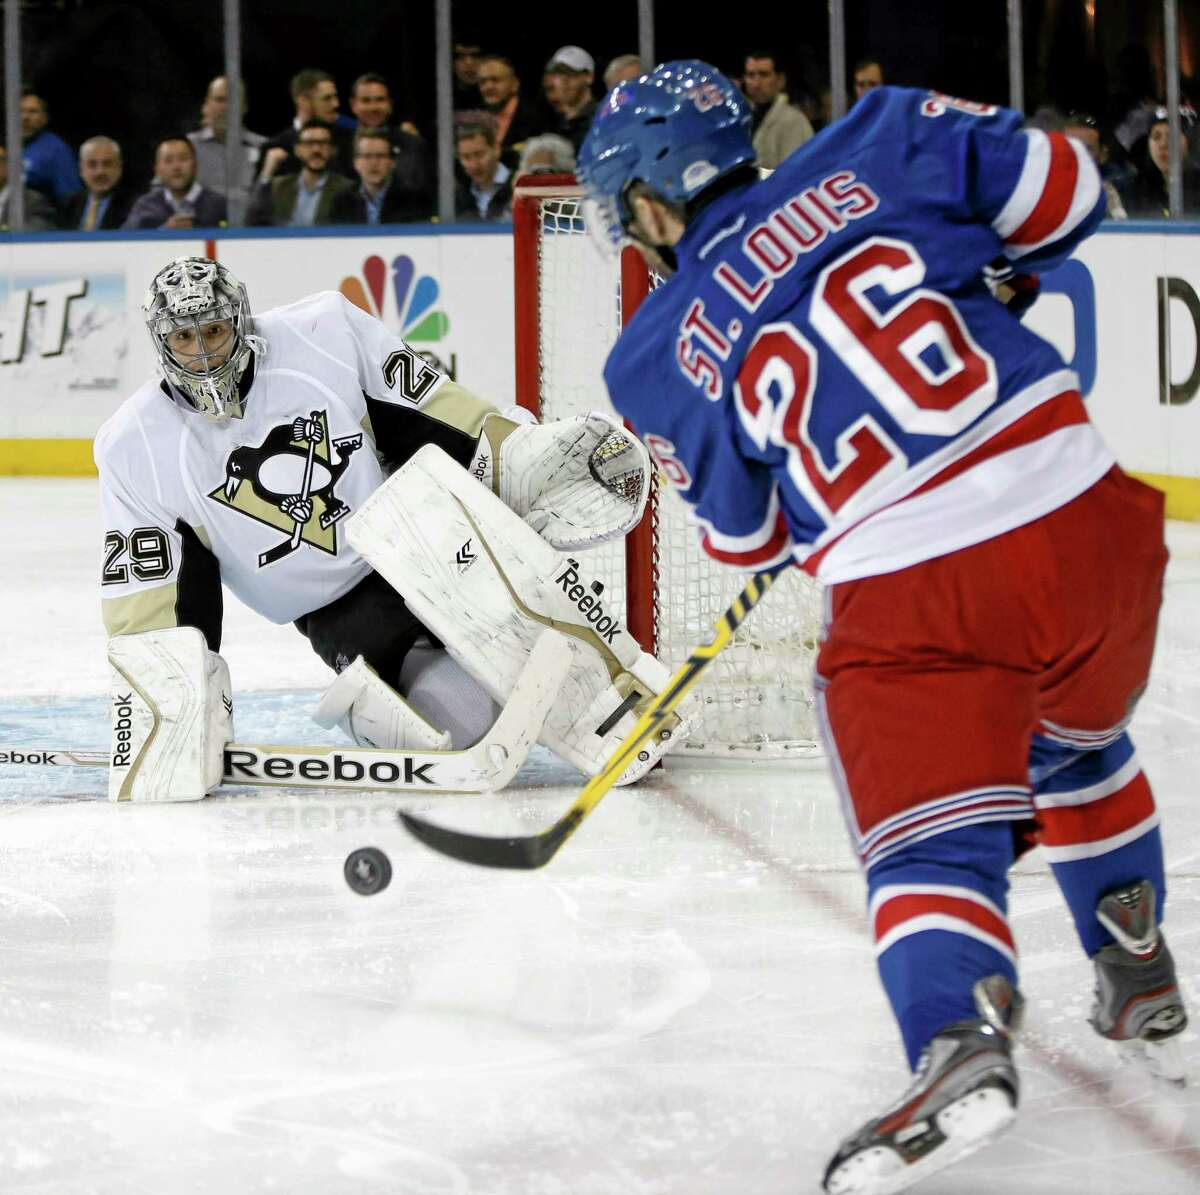 Rangers right wing Martin St. Louis takes a shot on Penguins goalie Marc-Andre Fleury in the second period Monday in New York.